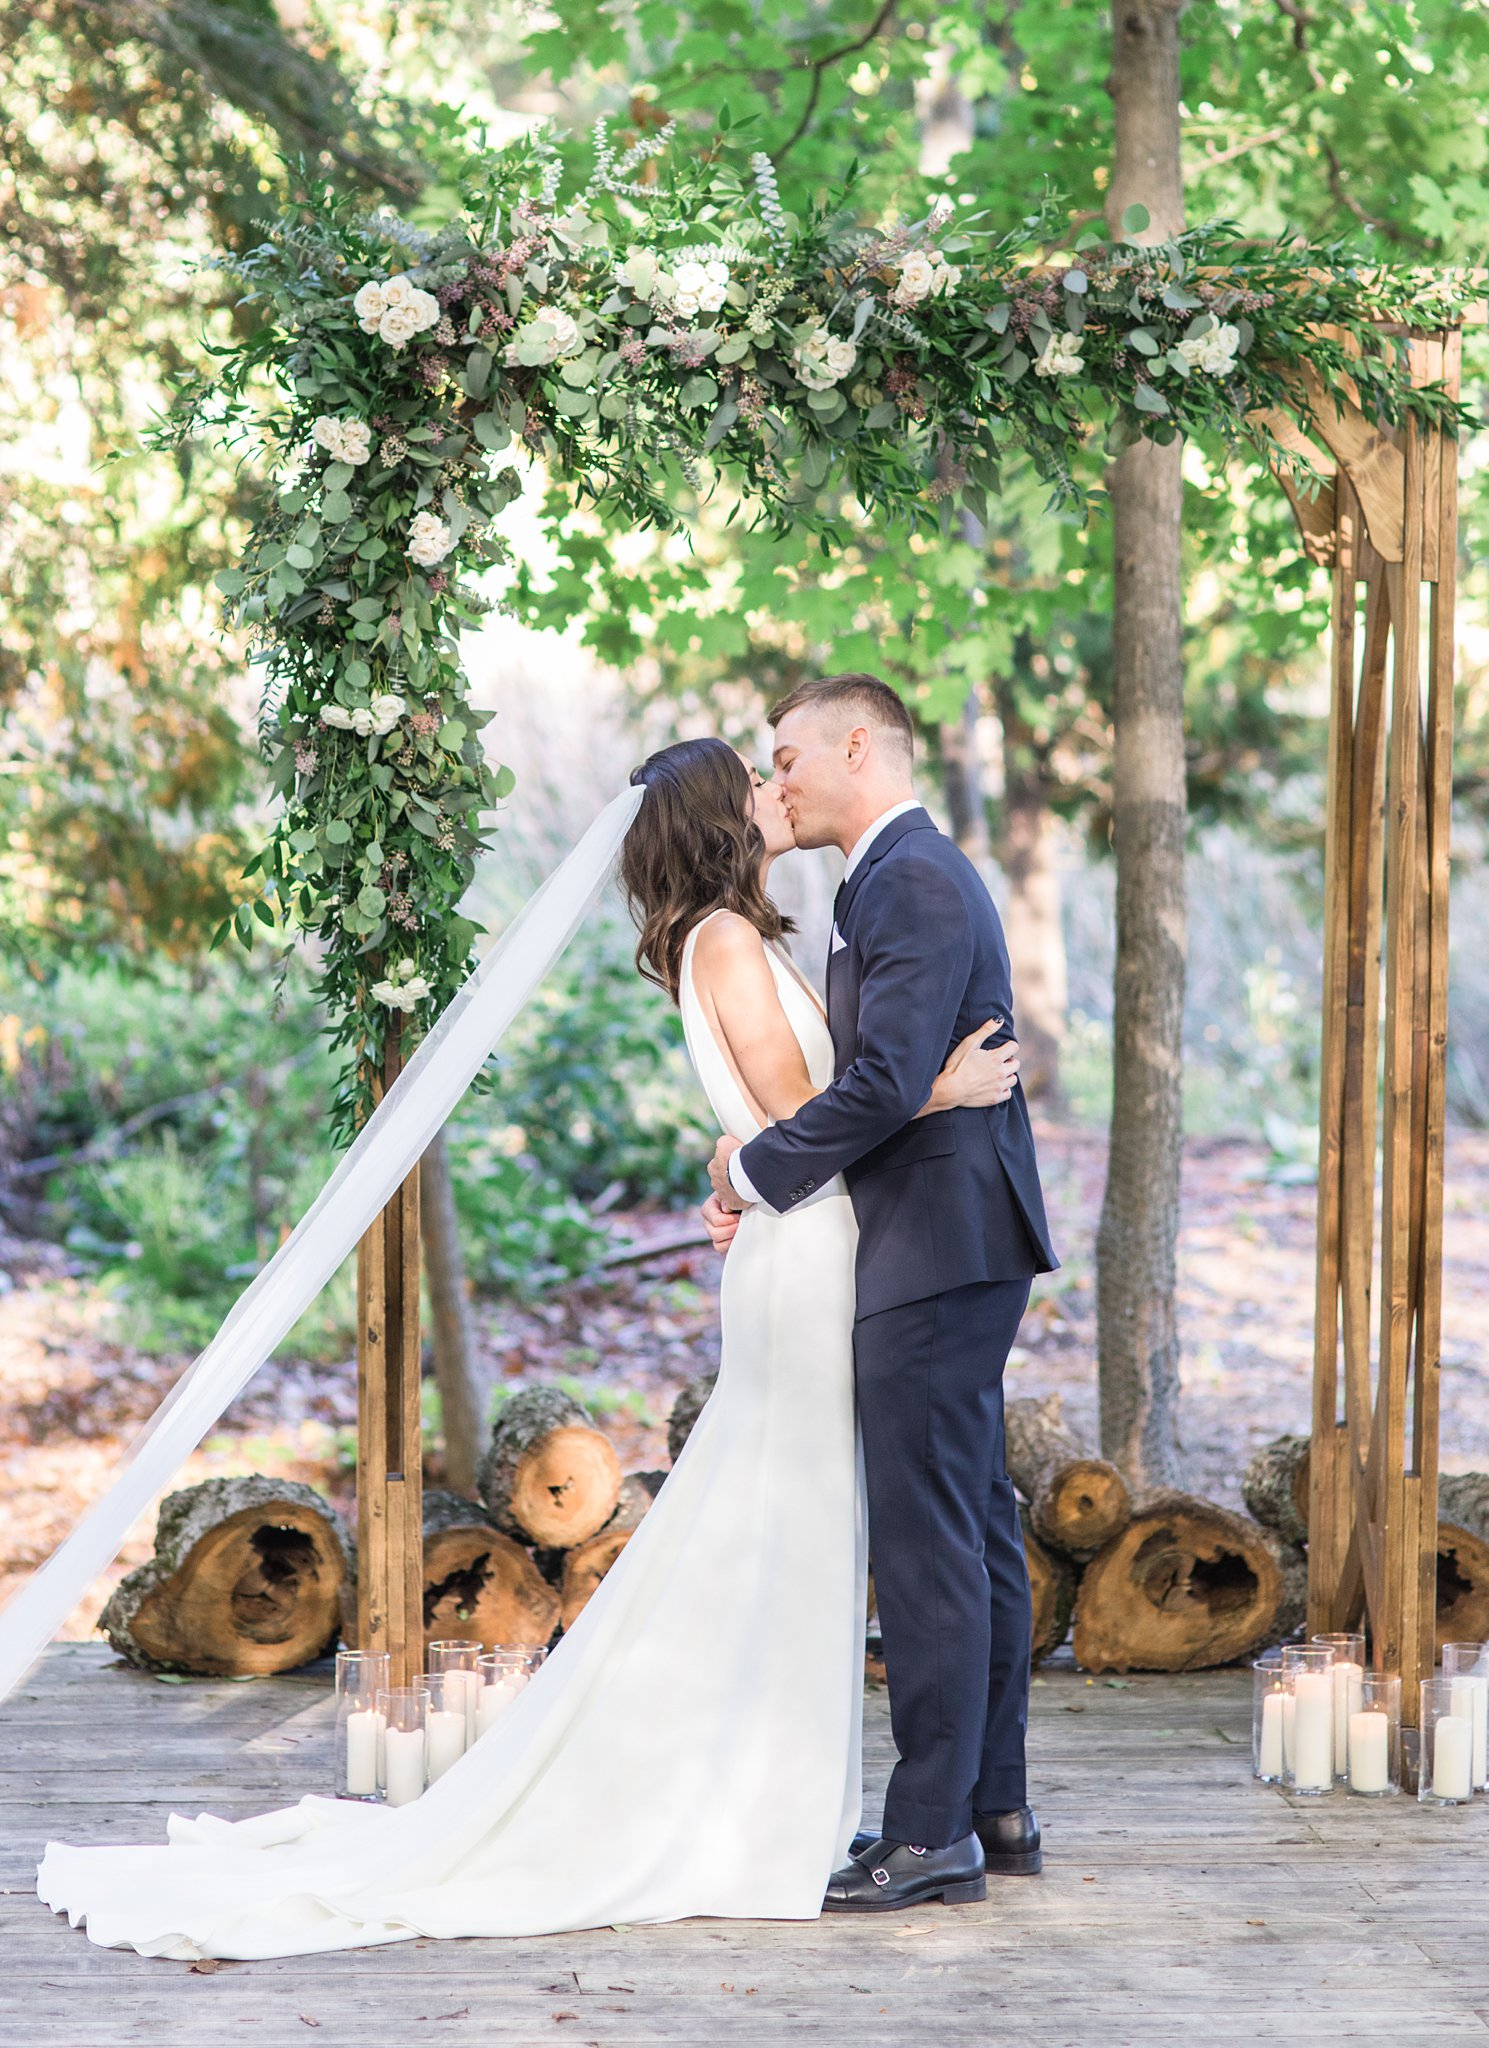 Bride and groom's first kiss, outdoor wedding, forest ceremony, Opinicon Wedding Photos by Amy Pinder Photography